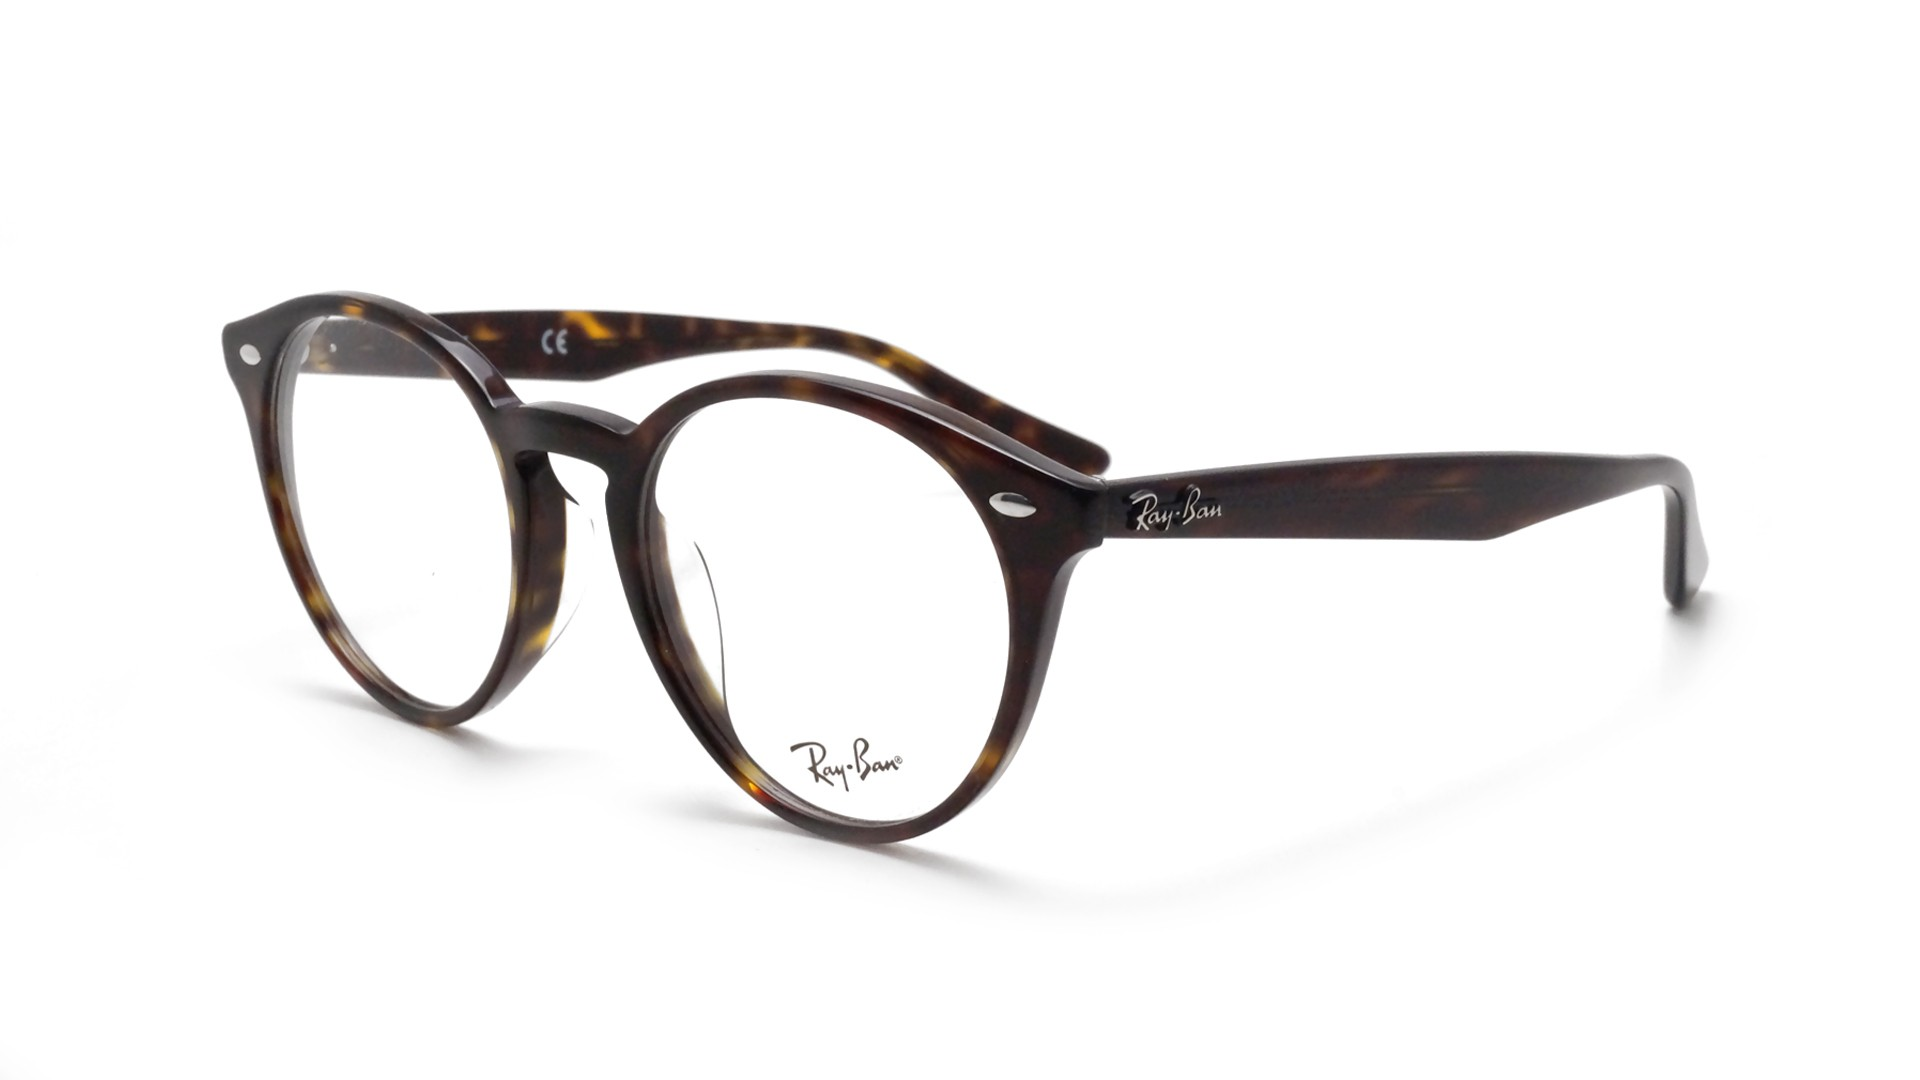 7bf3600fd0 Lunette Aviator Ray Ban Homme « One More Soul